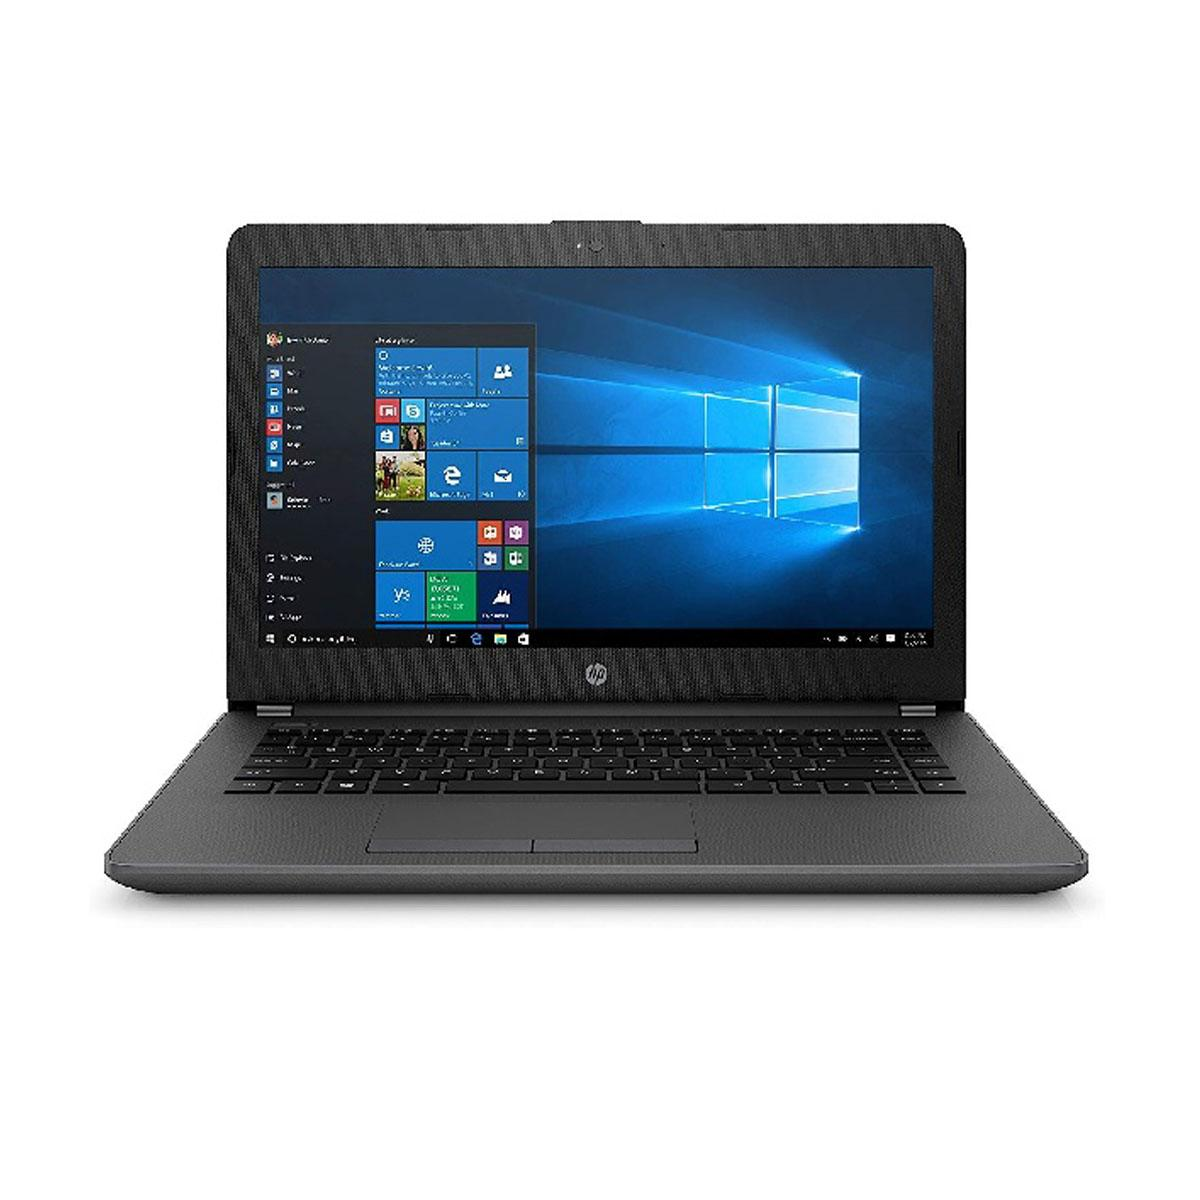 Laptop HP 240 G6 4qx35ea I3-7020u 14 8 GB 1 TB VGA HDMI Rj45 W10